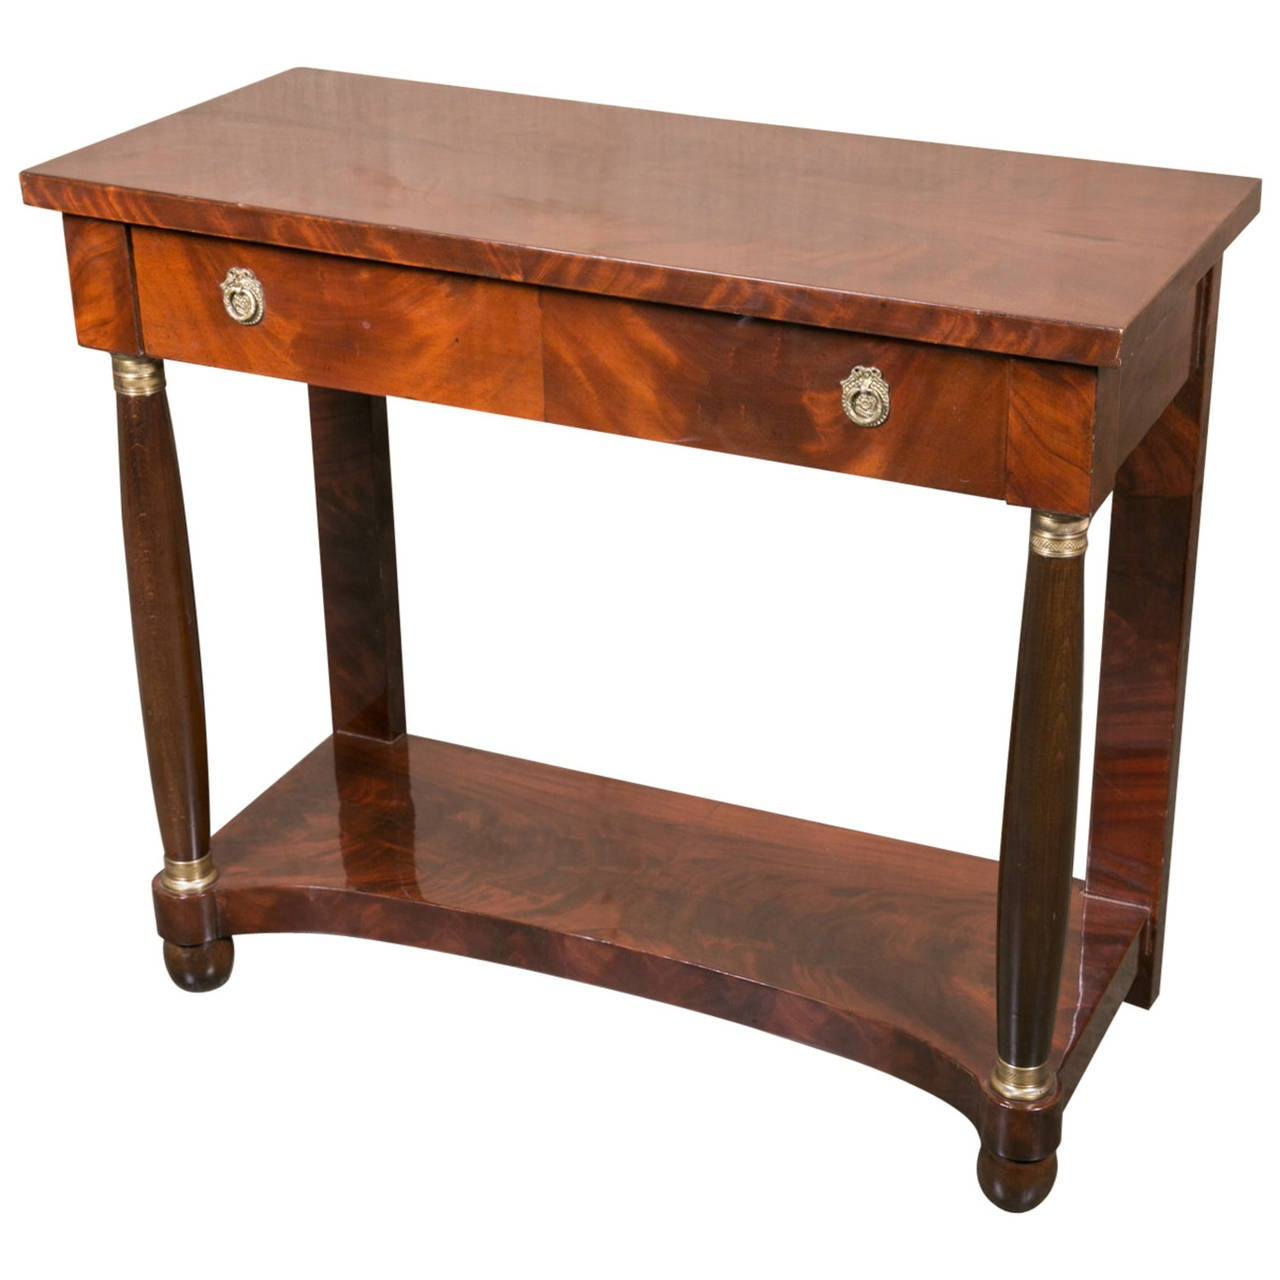 French empire mahogany console table for sale at 1stdibs for Sofa table on sale